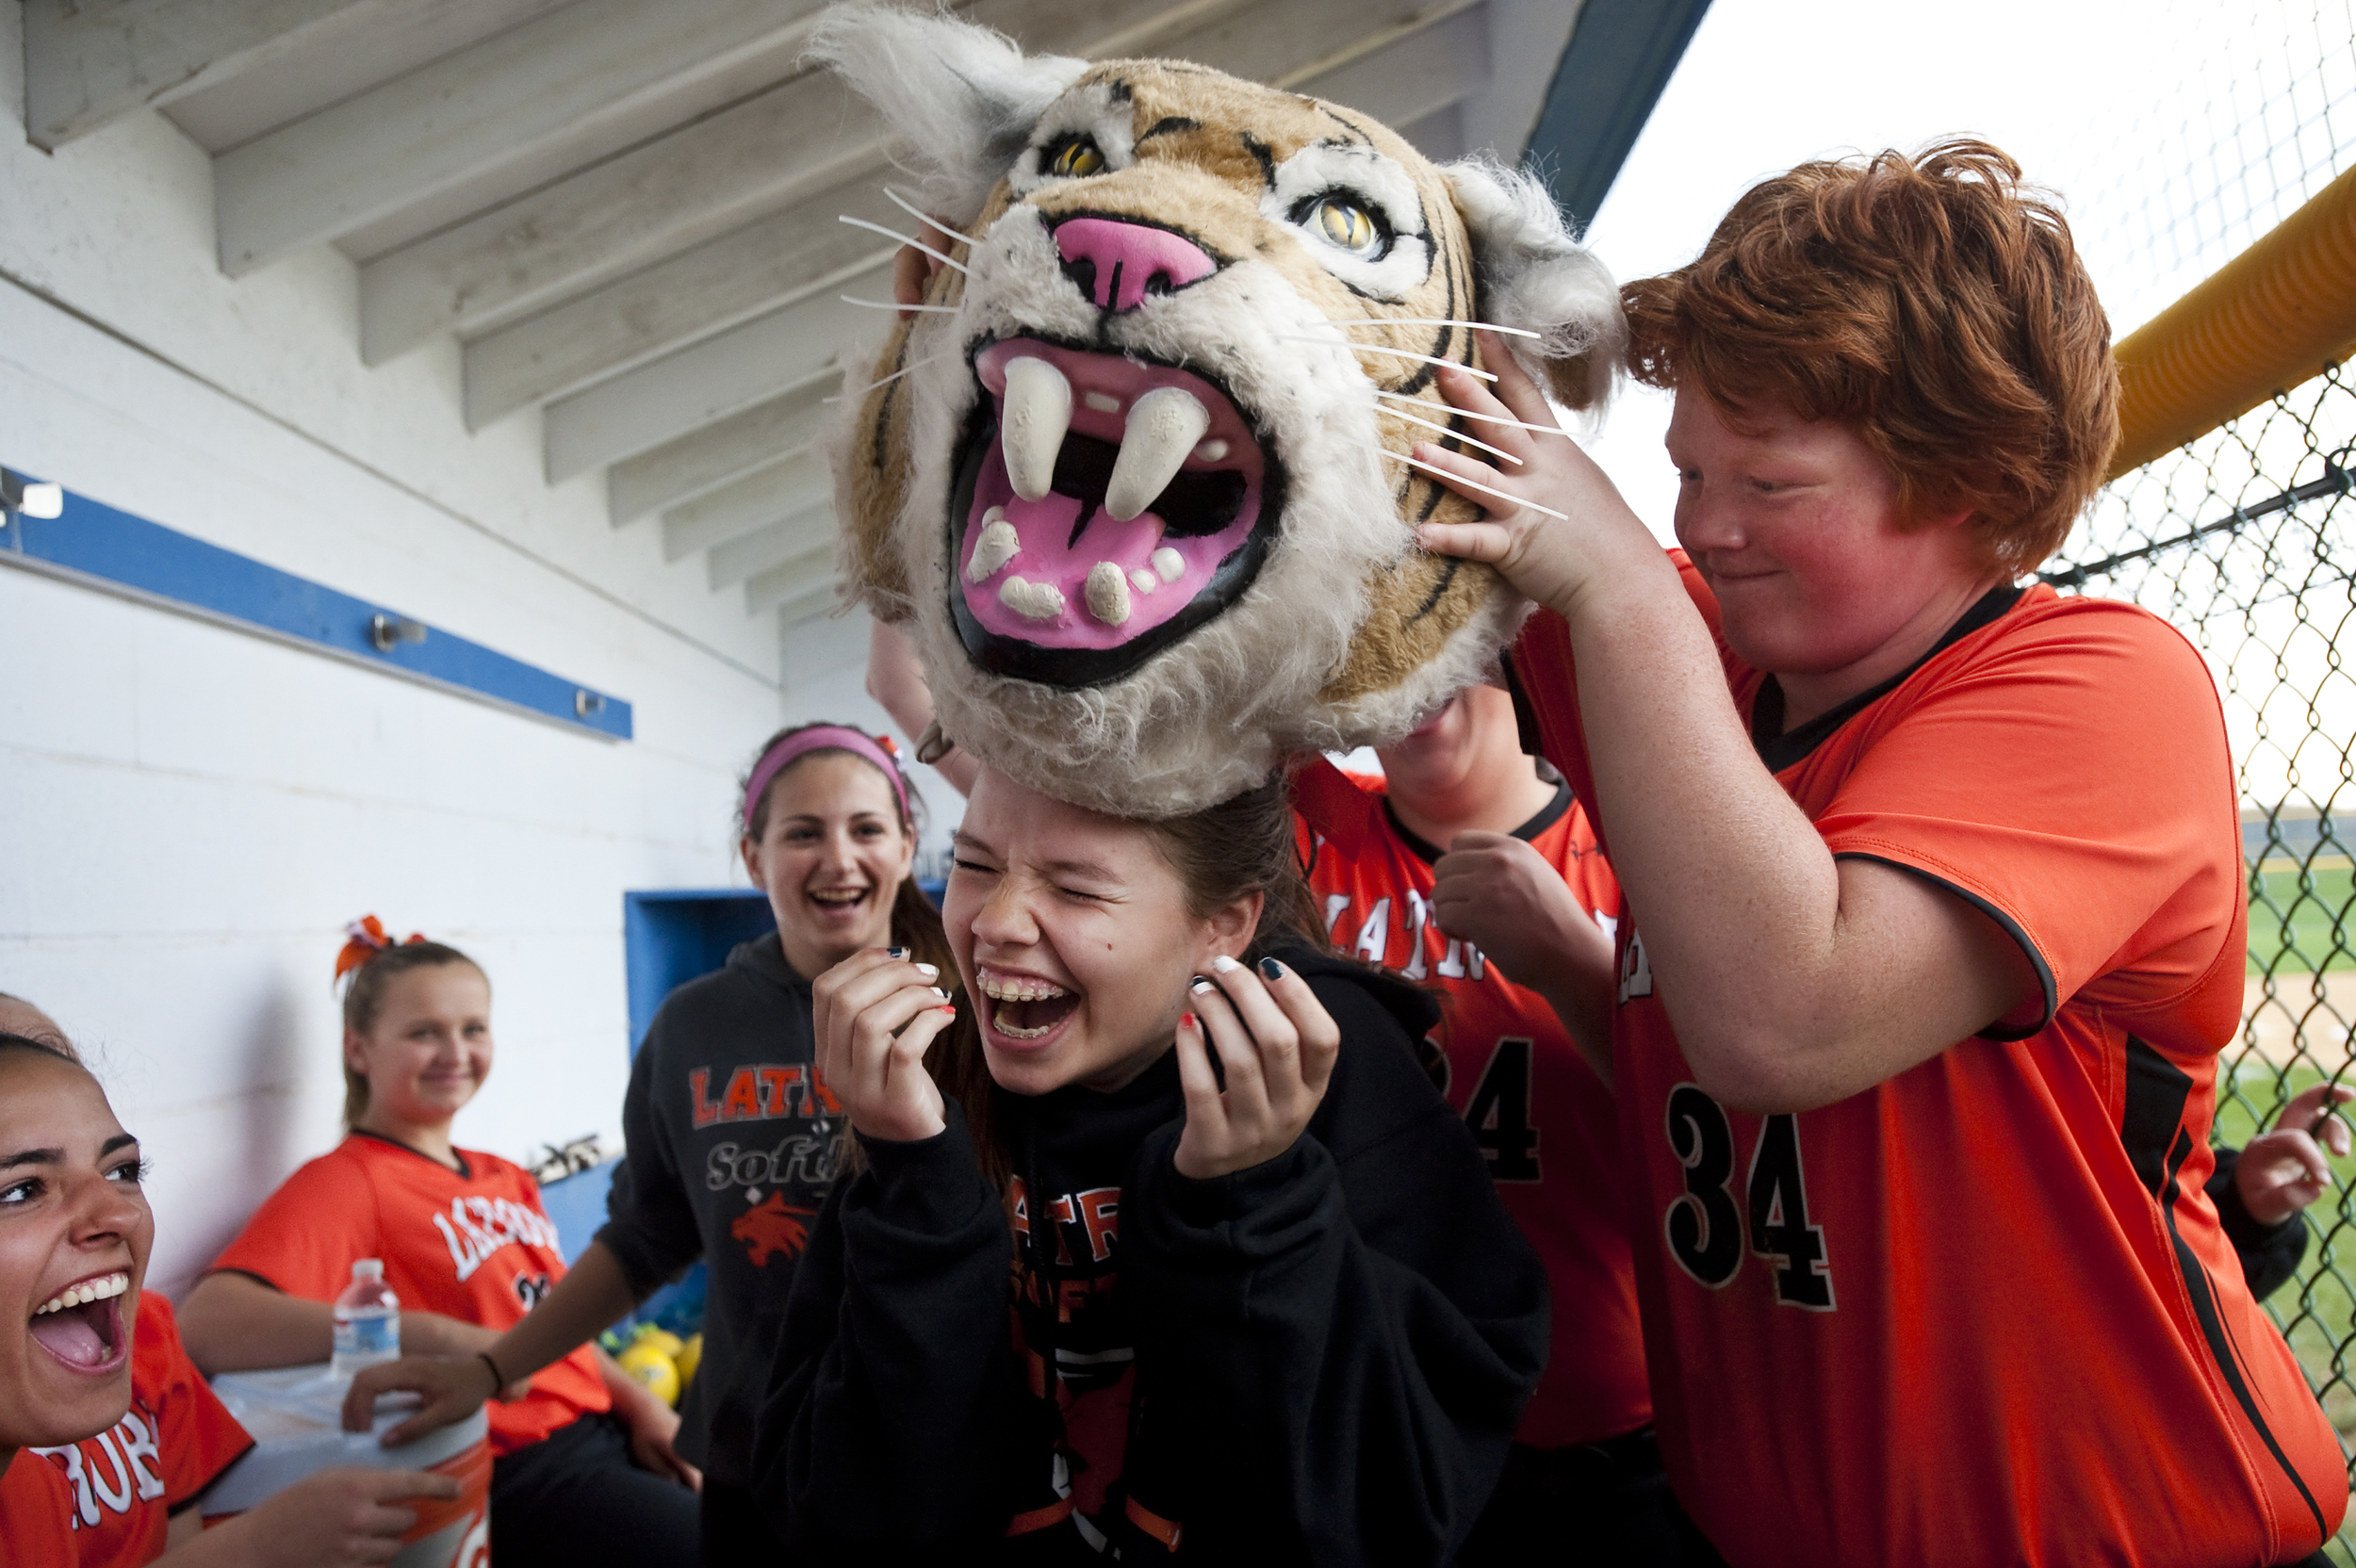 """Latrobe's Lauren Sigut is """"crowned"""" rock, paper, scissors champion by Morgan Schweizer while waiting out a rain delay during a softball game at Hempfield on Friday, April 22, 2016. Hempfield won 7-1."""